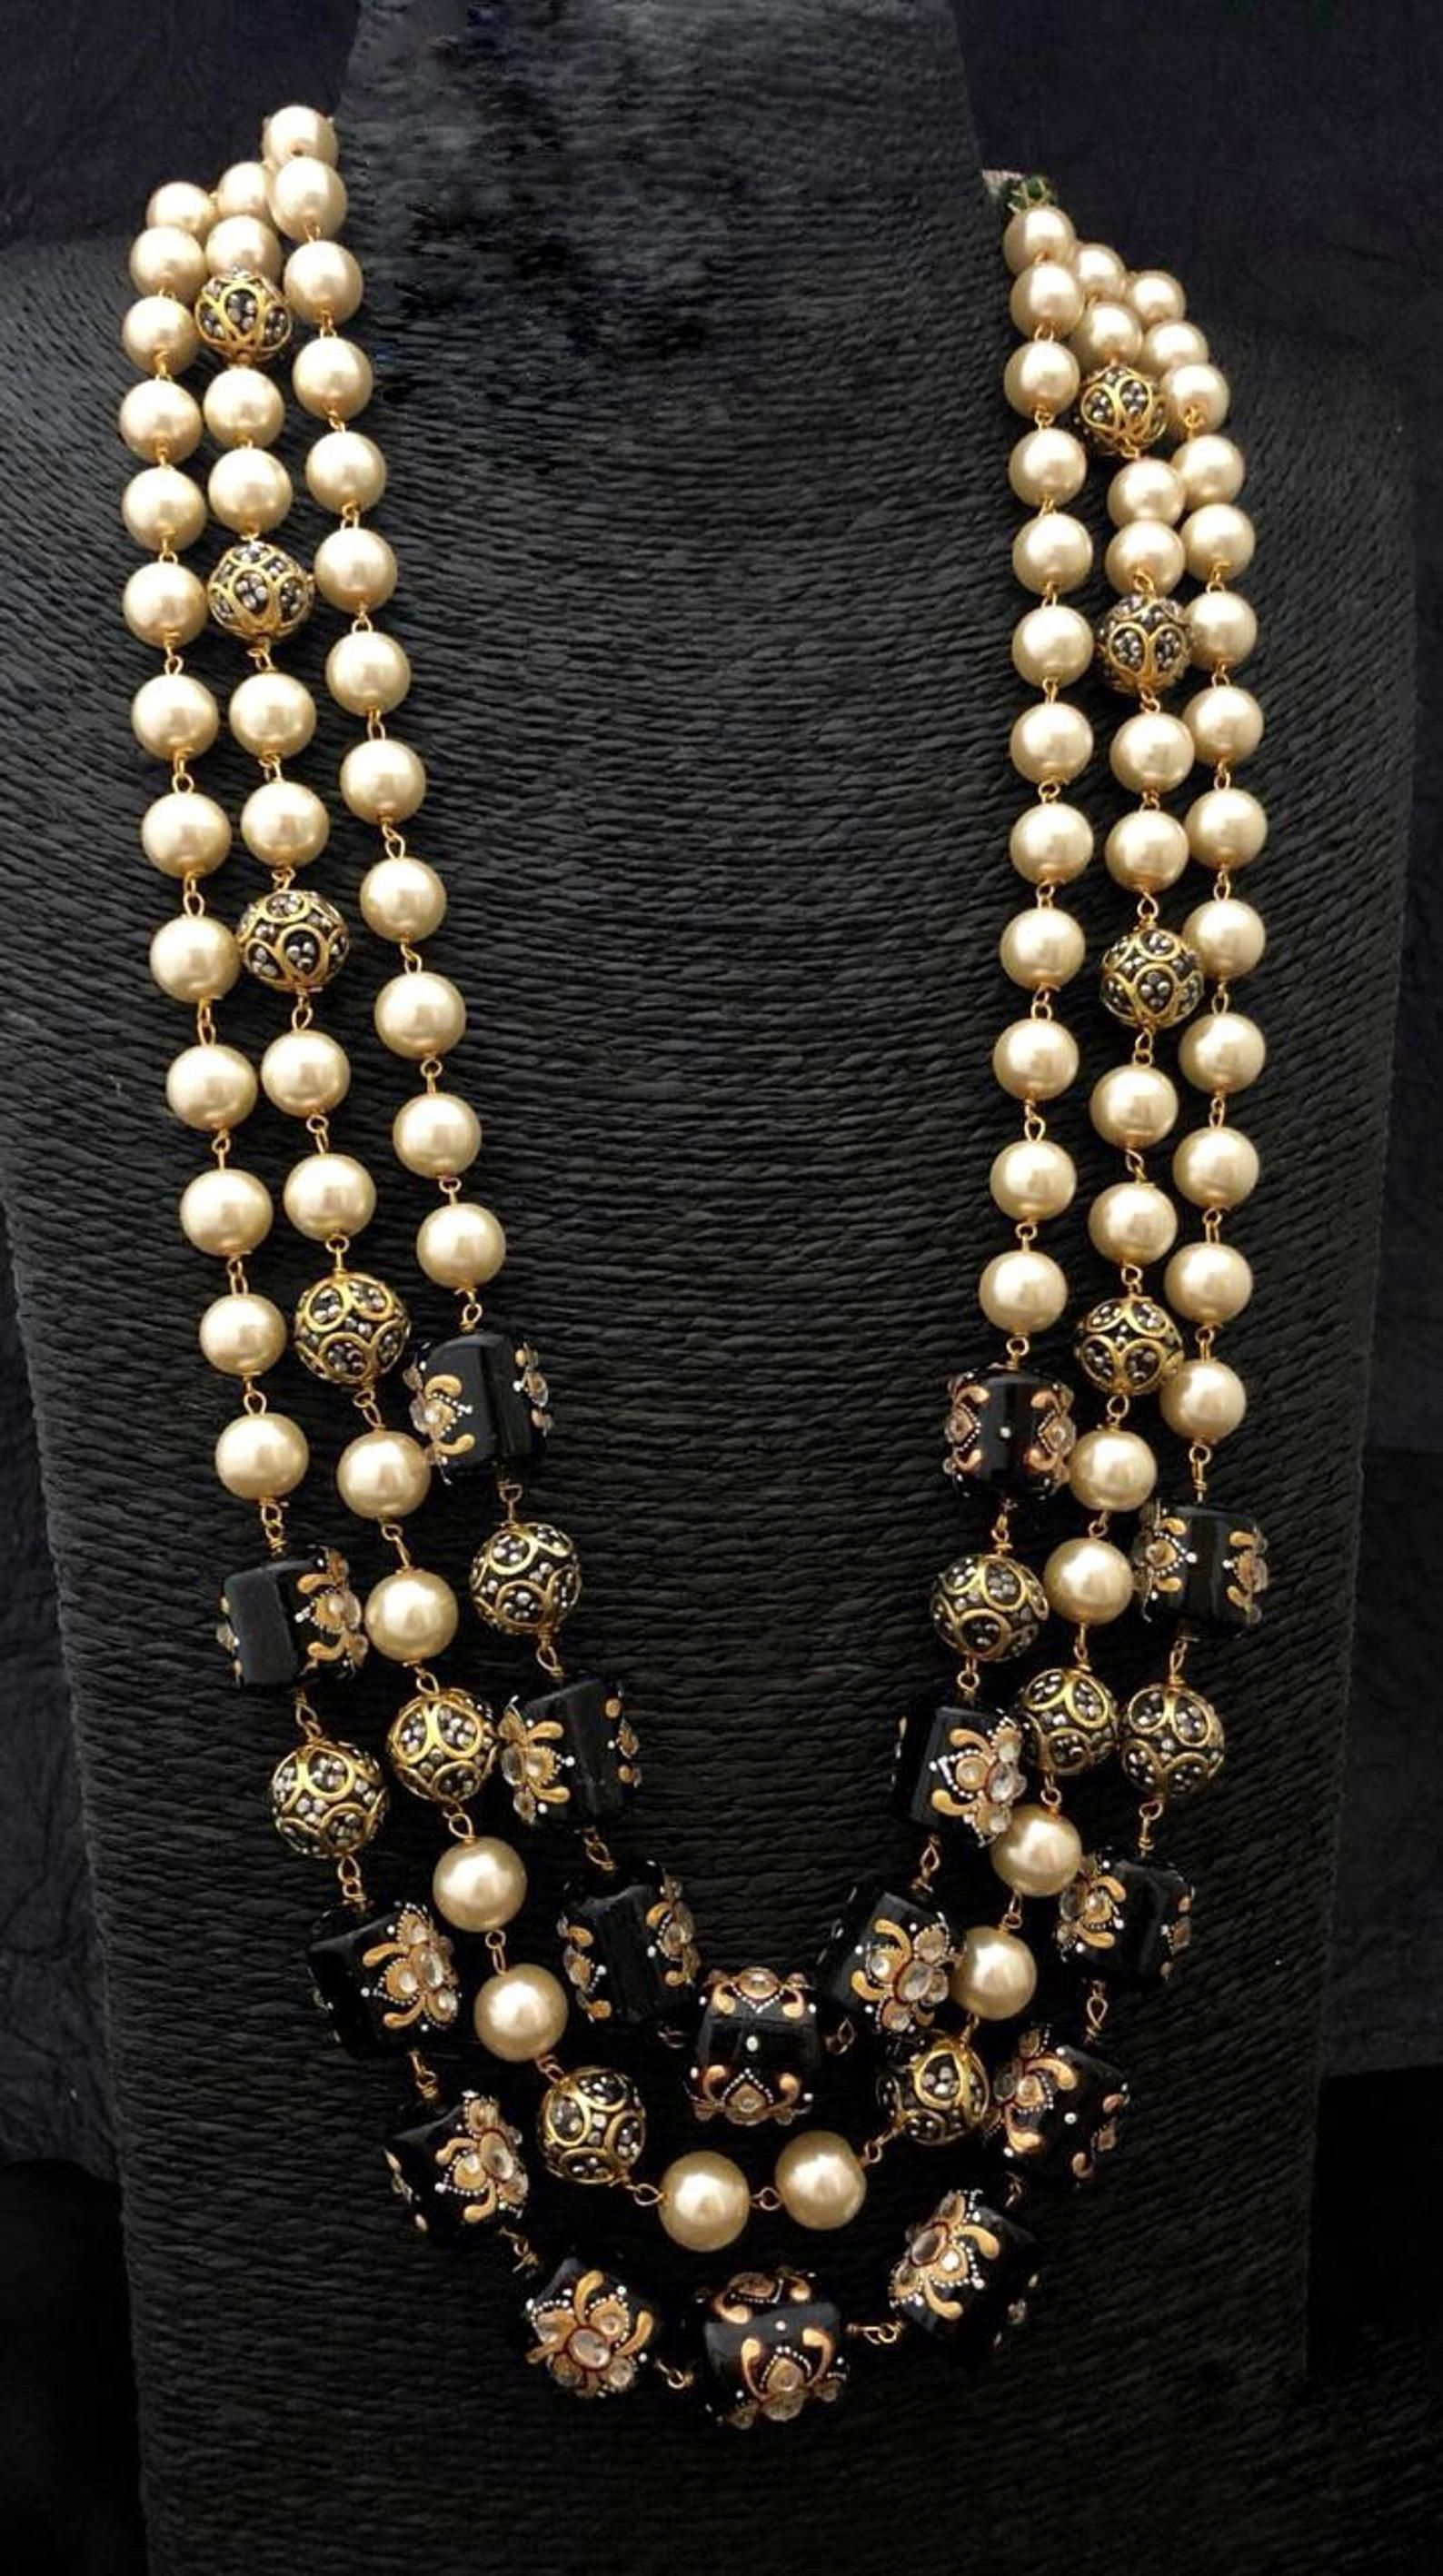 Items similar to Hand crafted Pearl and Beads Necklace, Jaipur Mala on Etsy